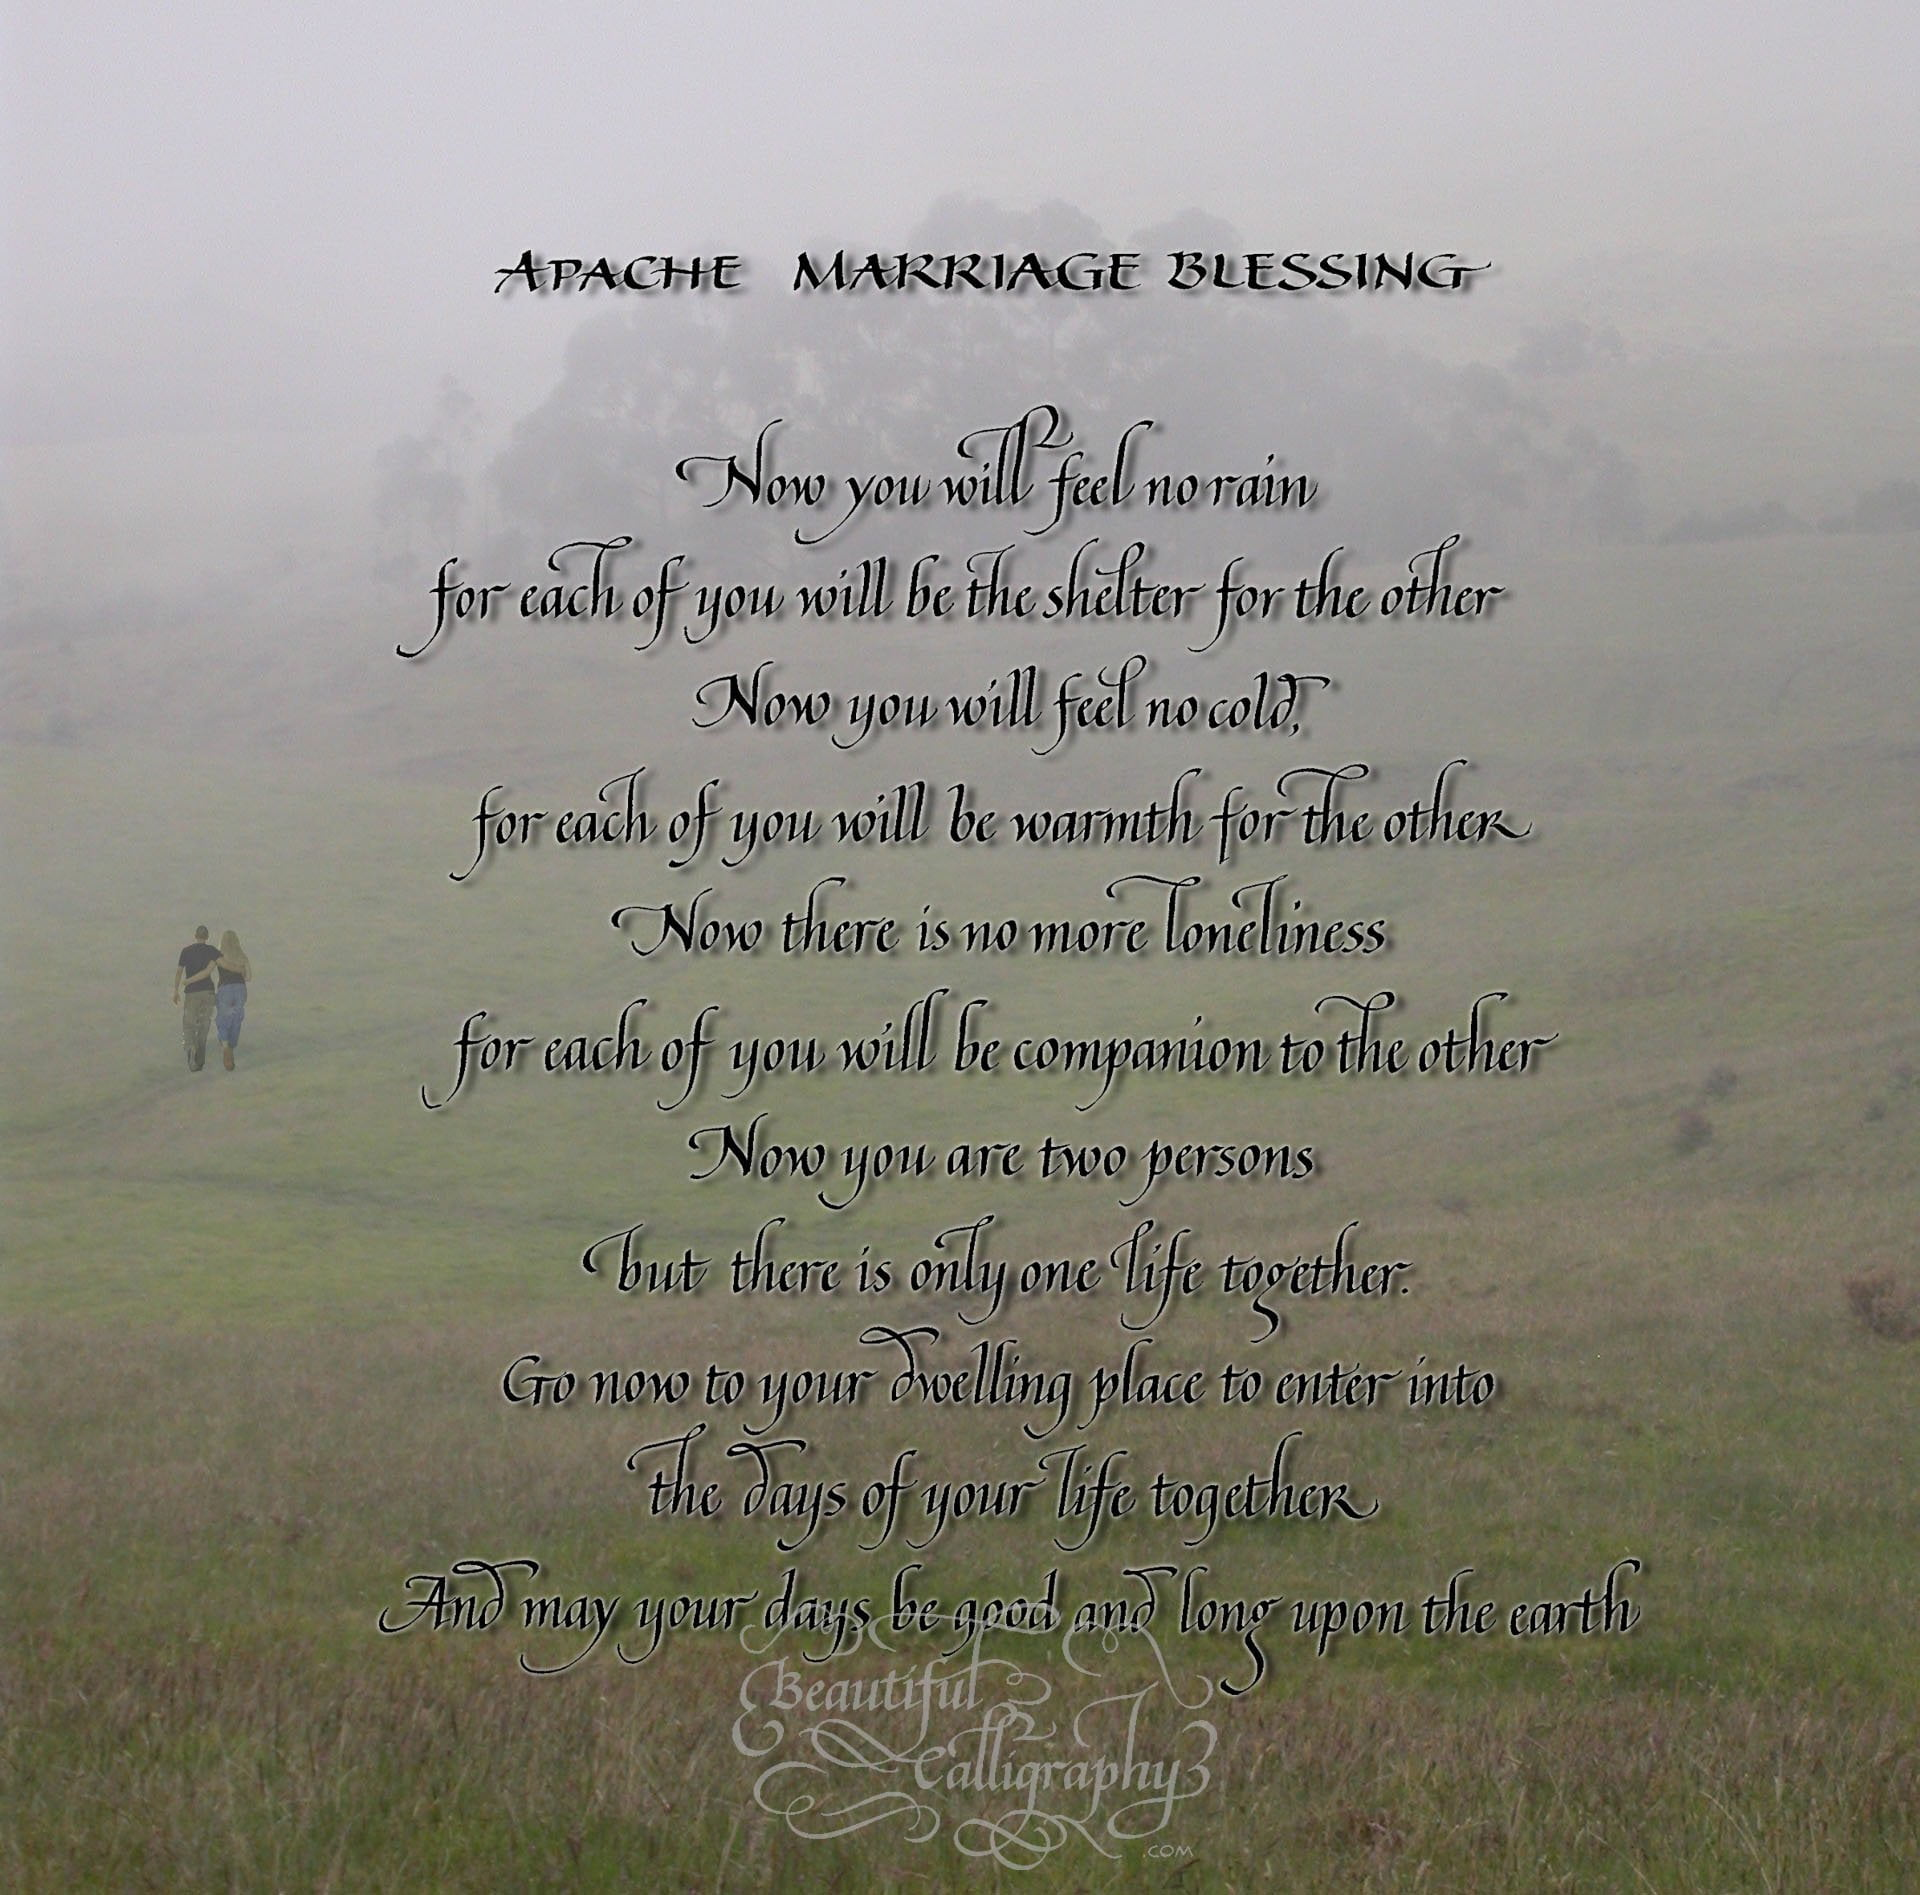 Apache Wedding Blessing in calligraphy